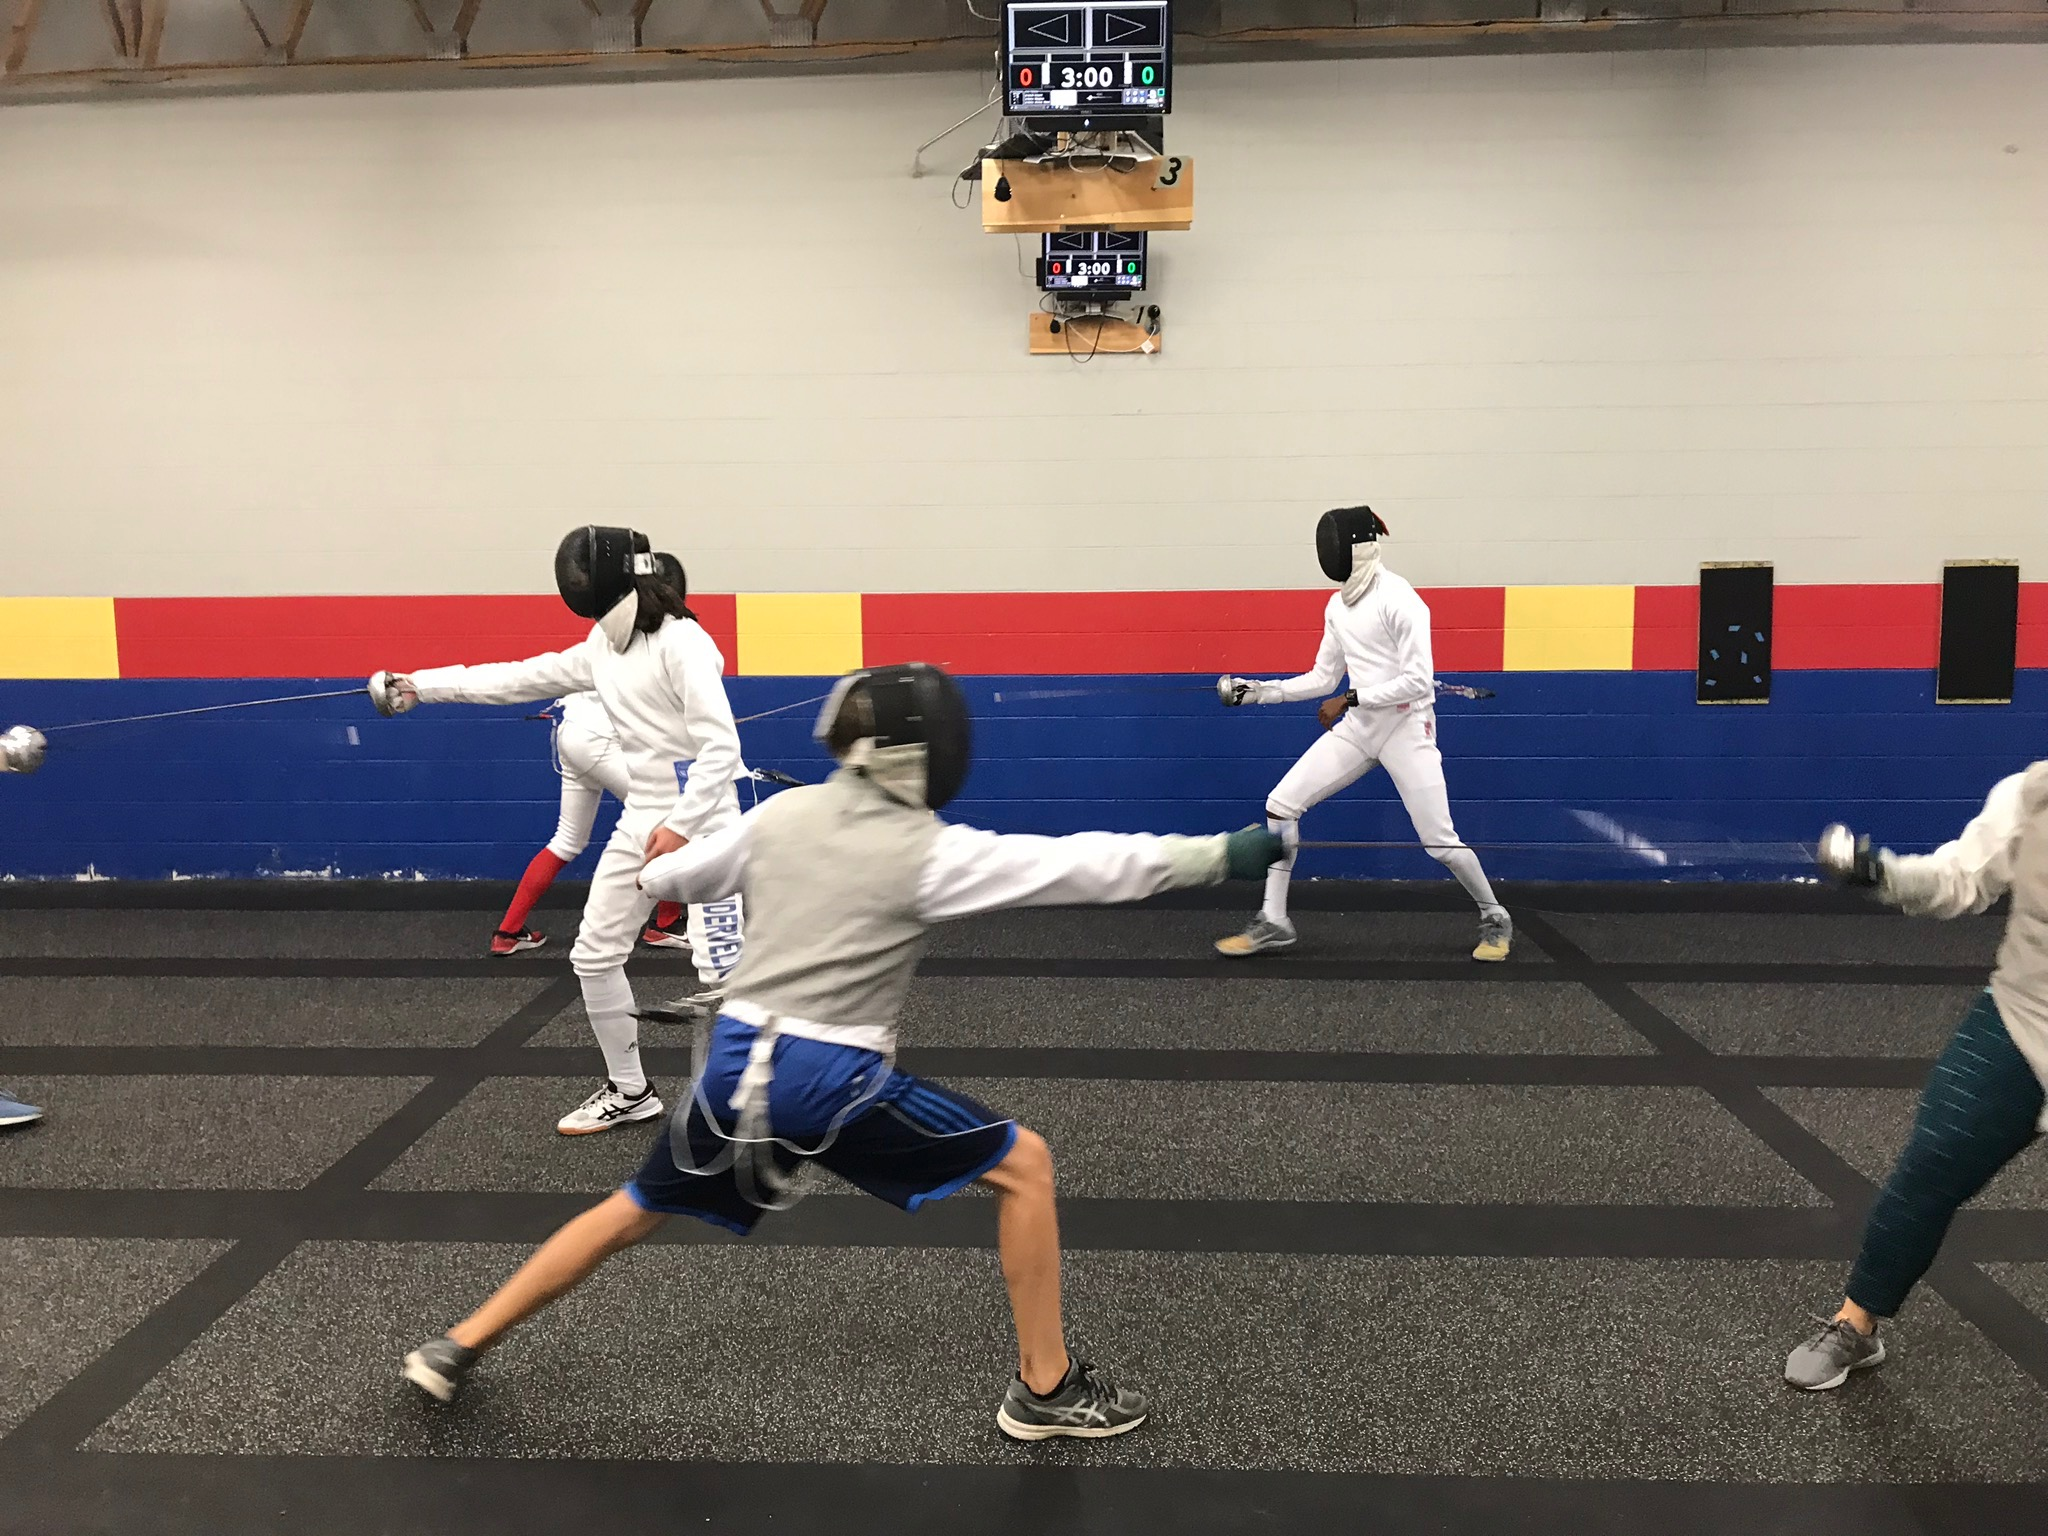 Boise Fencing club - Where LD practices some thrusting and parrying and Joel watches, awkwardly.